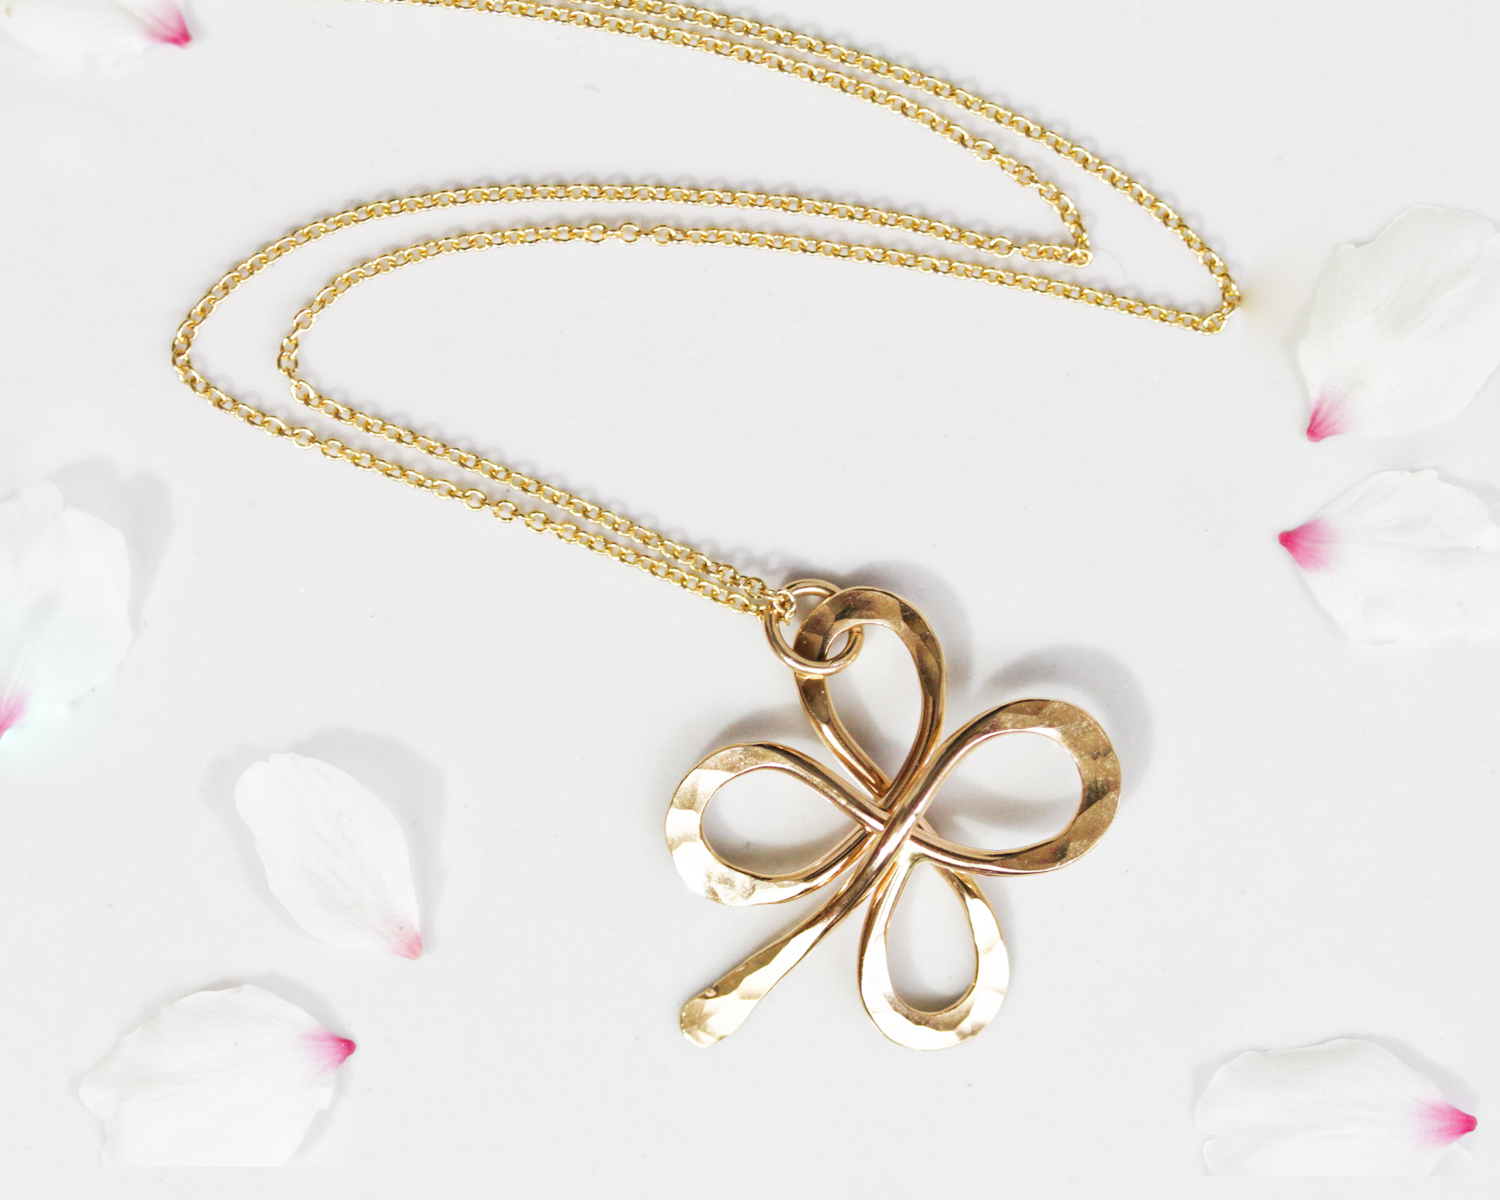 Lucky Gold Four Leaf Clover Hand Made Necklaceamy Waltz Designs Throughout 2020 Lucky Four Leaf Clover Pendant Necklaces (View 8 of 25)